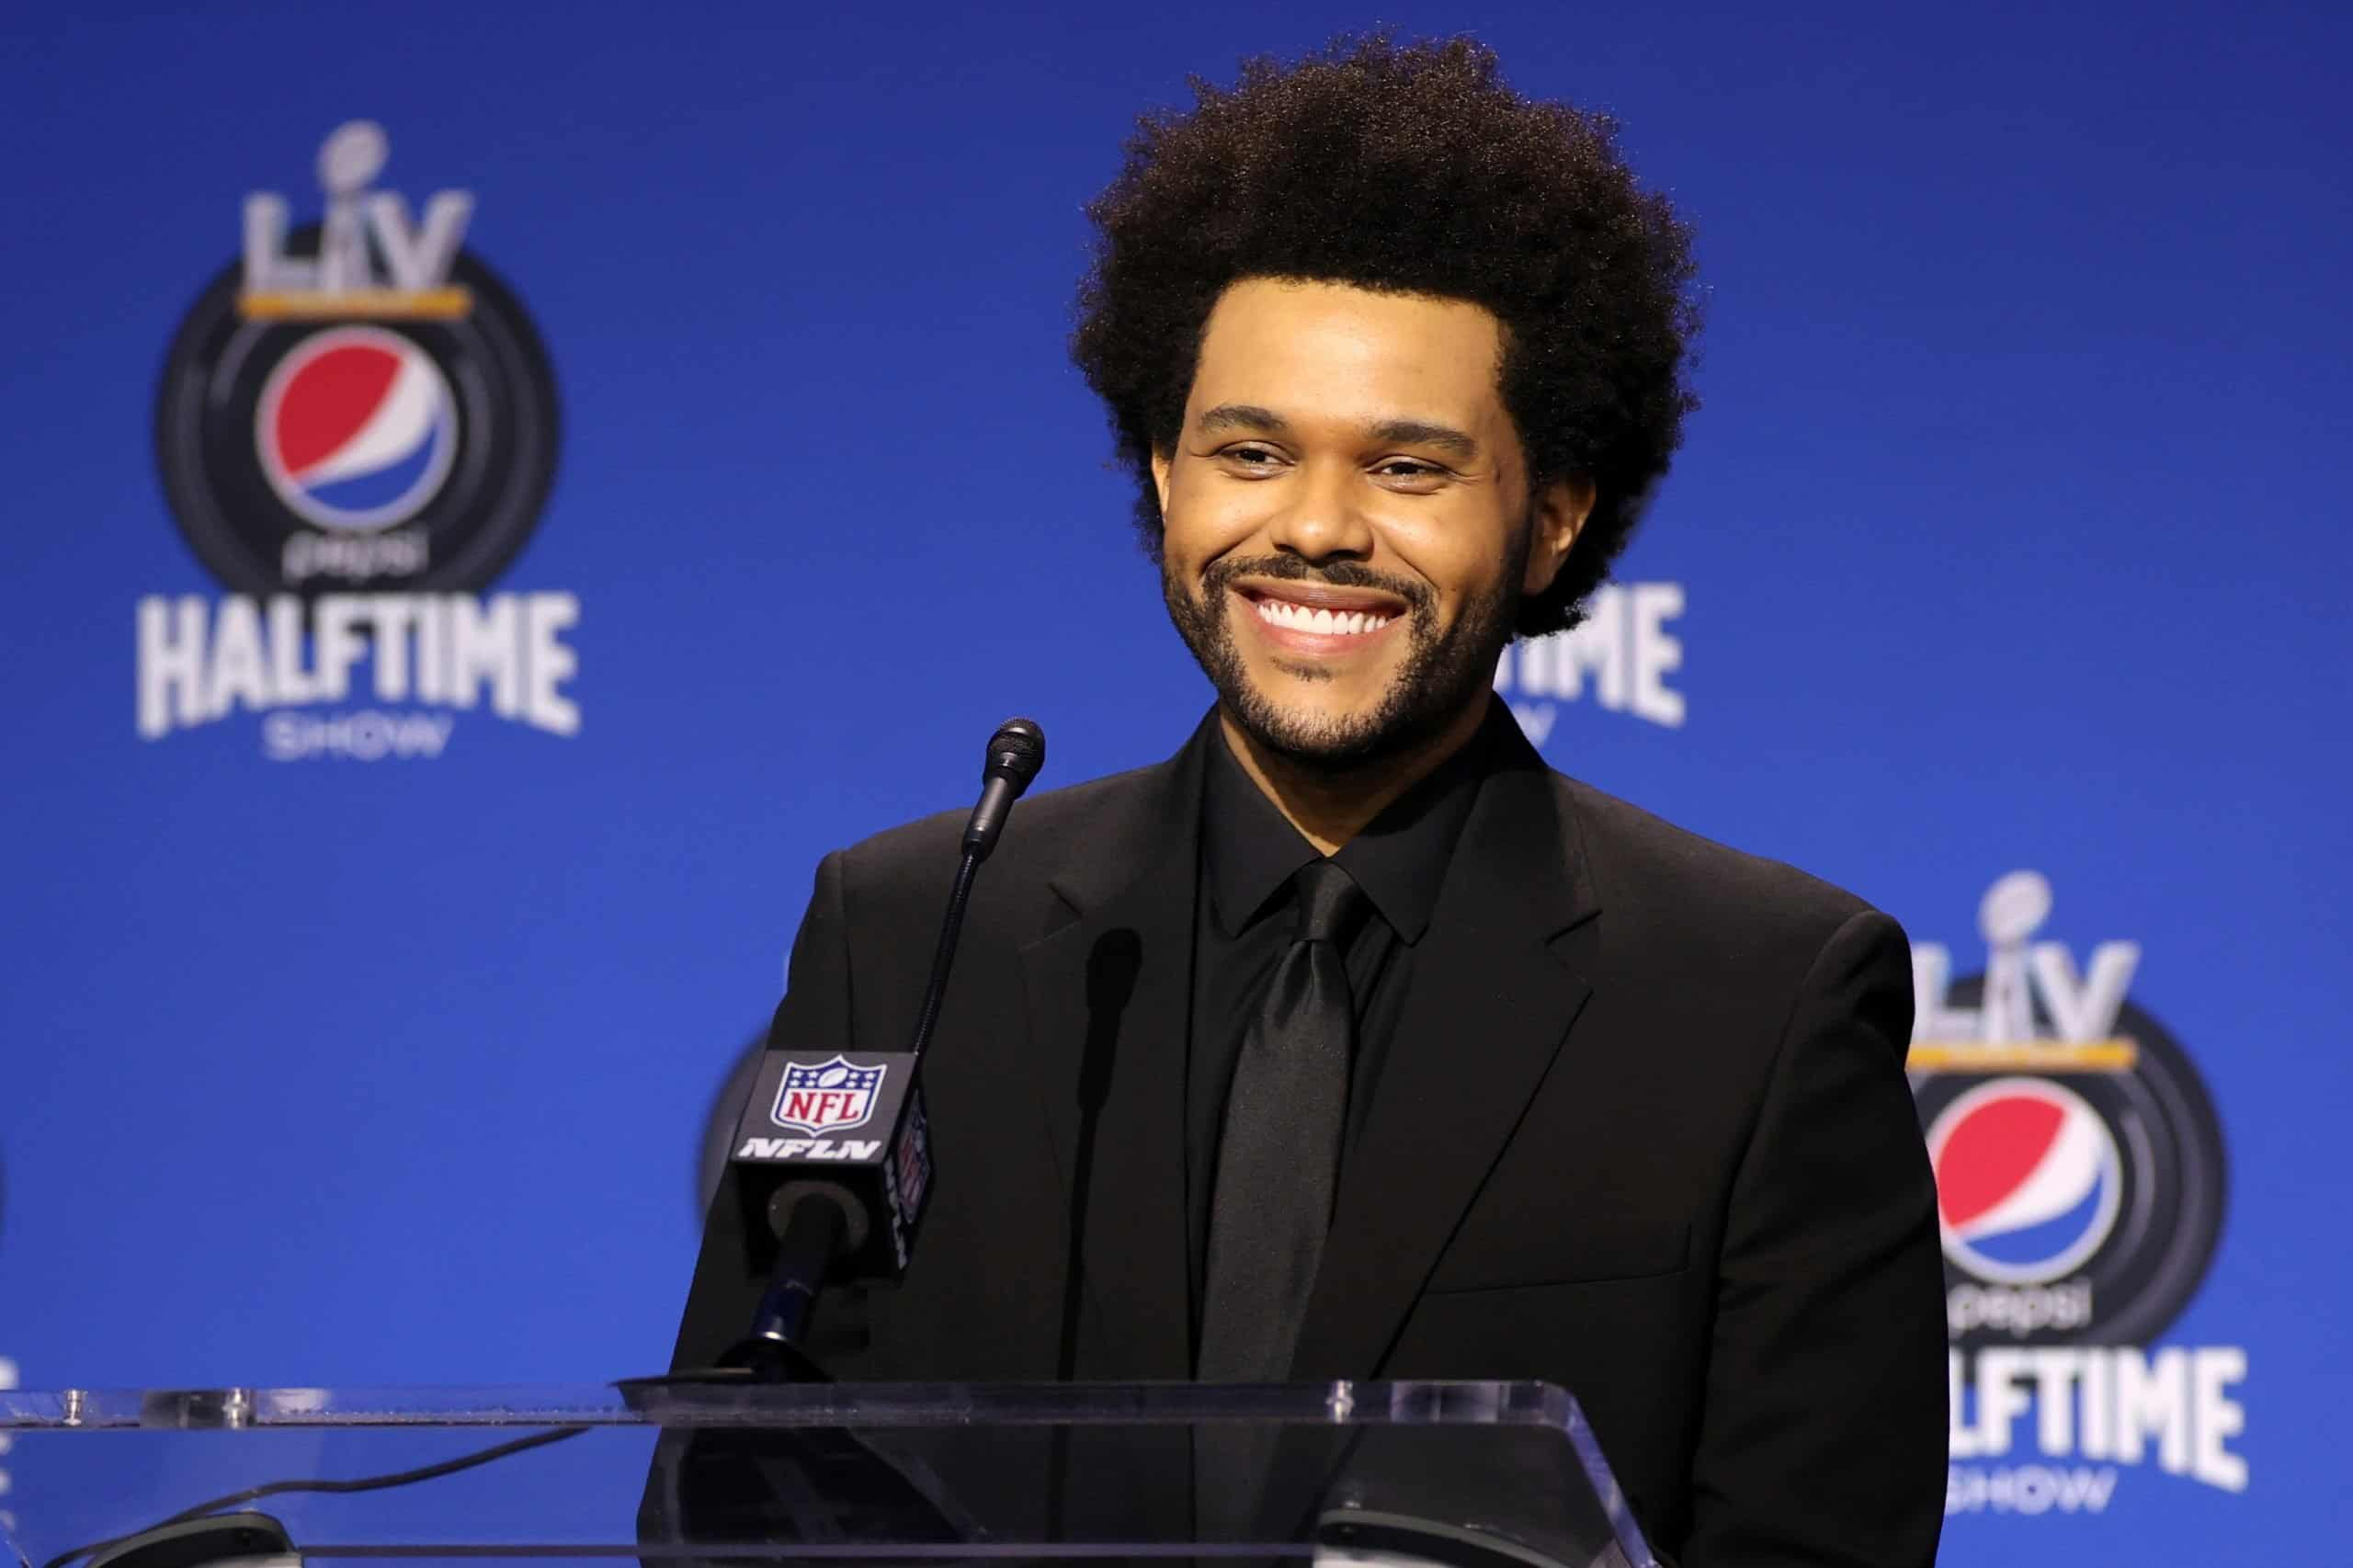 Super Bowl halftime show 2021: Who is performing in Super Bowl 55? The Weeknd